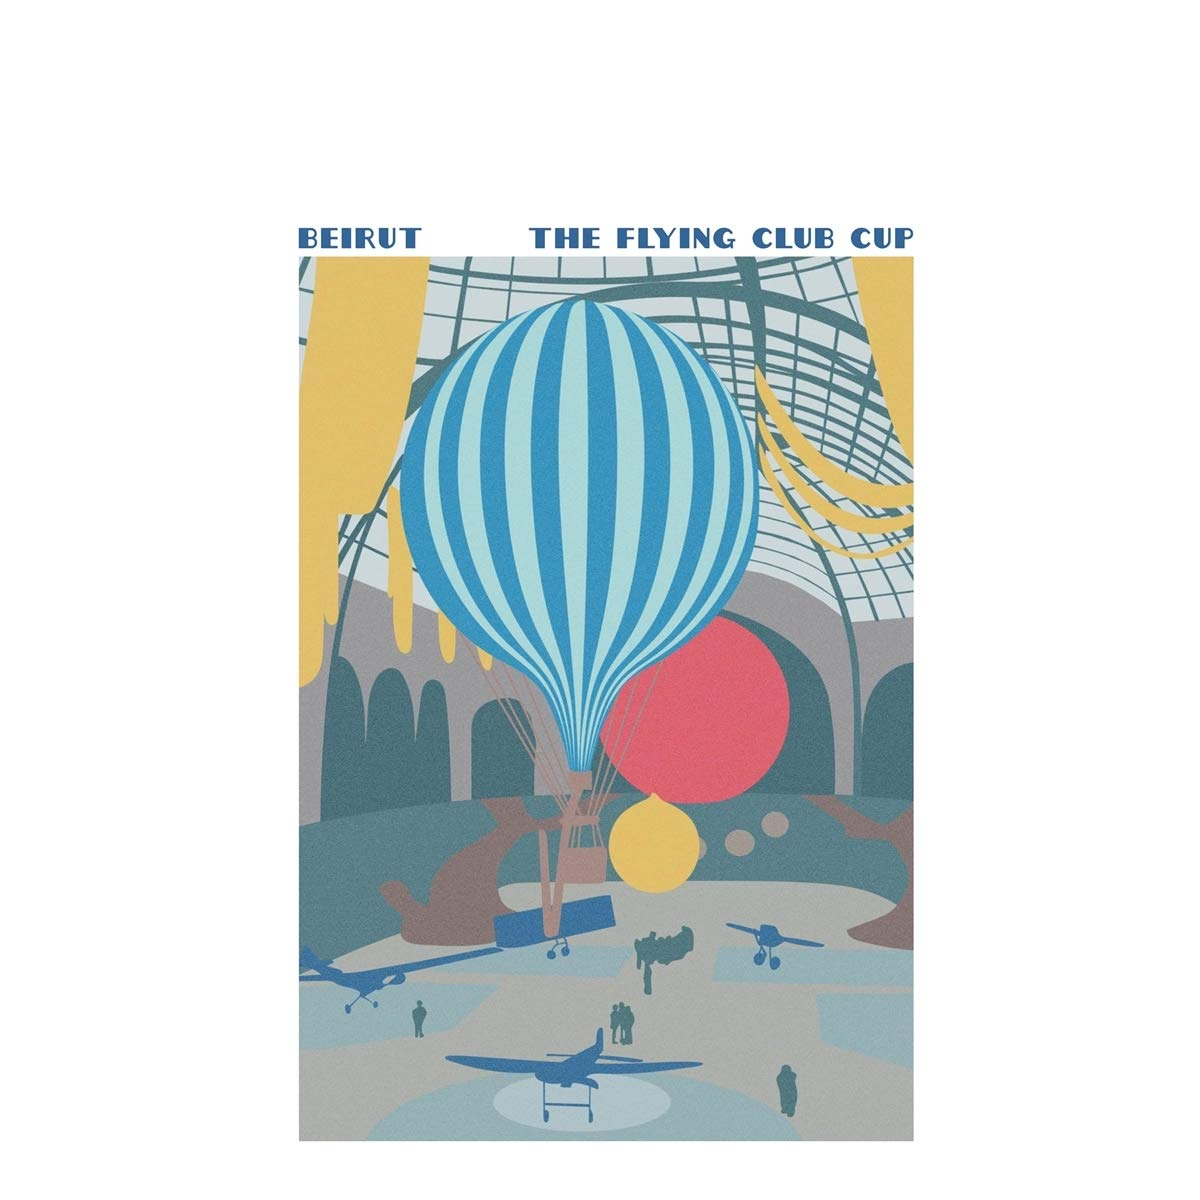 Beirut/The Flying Club Cup [LP]